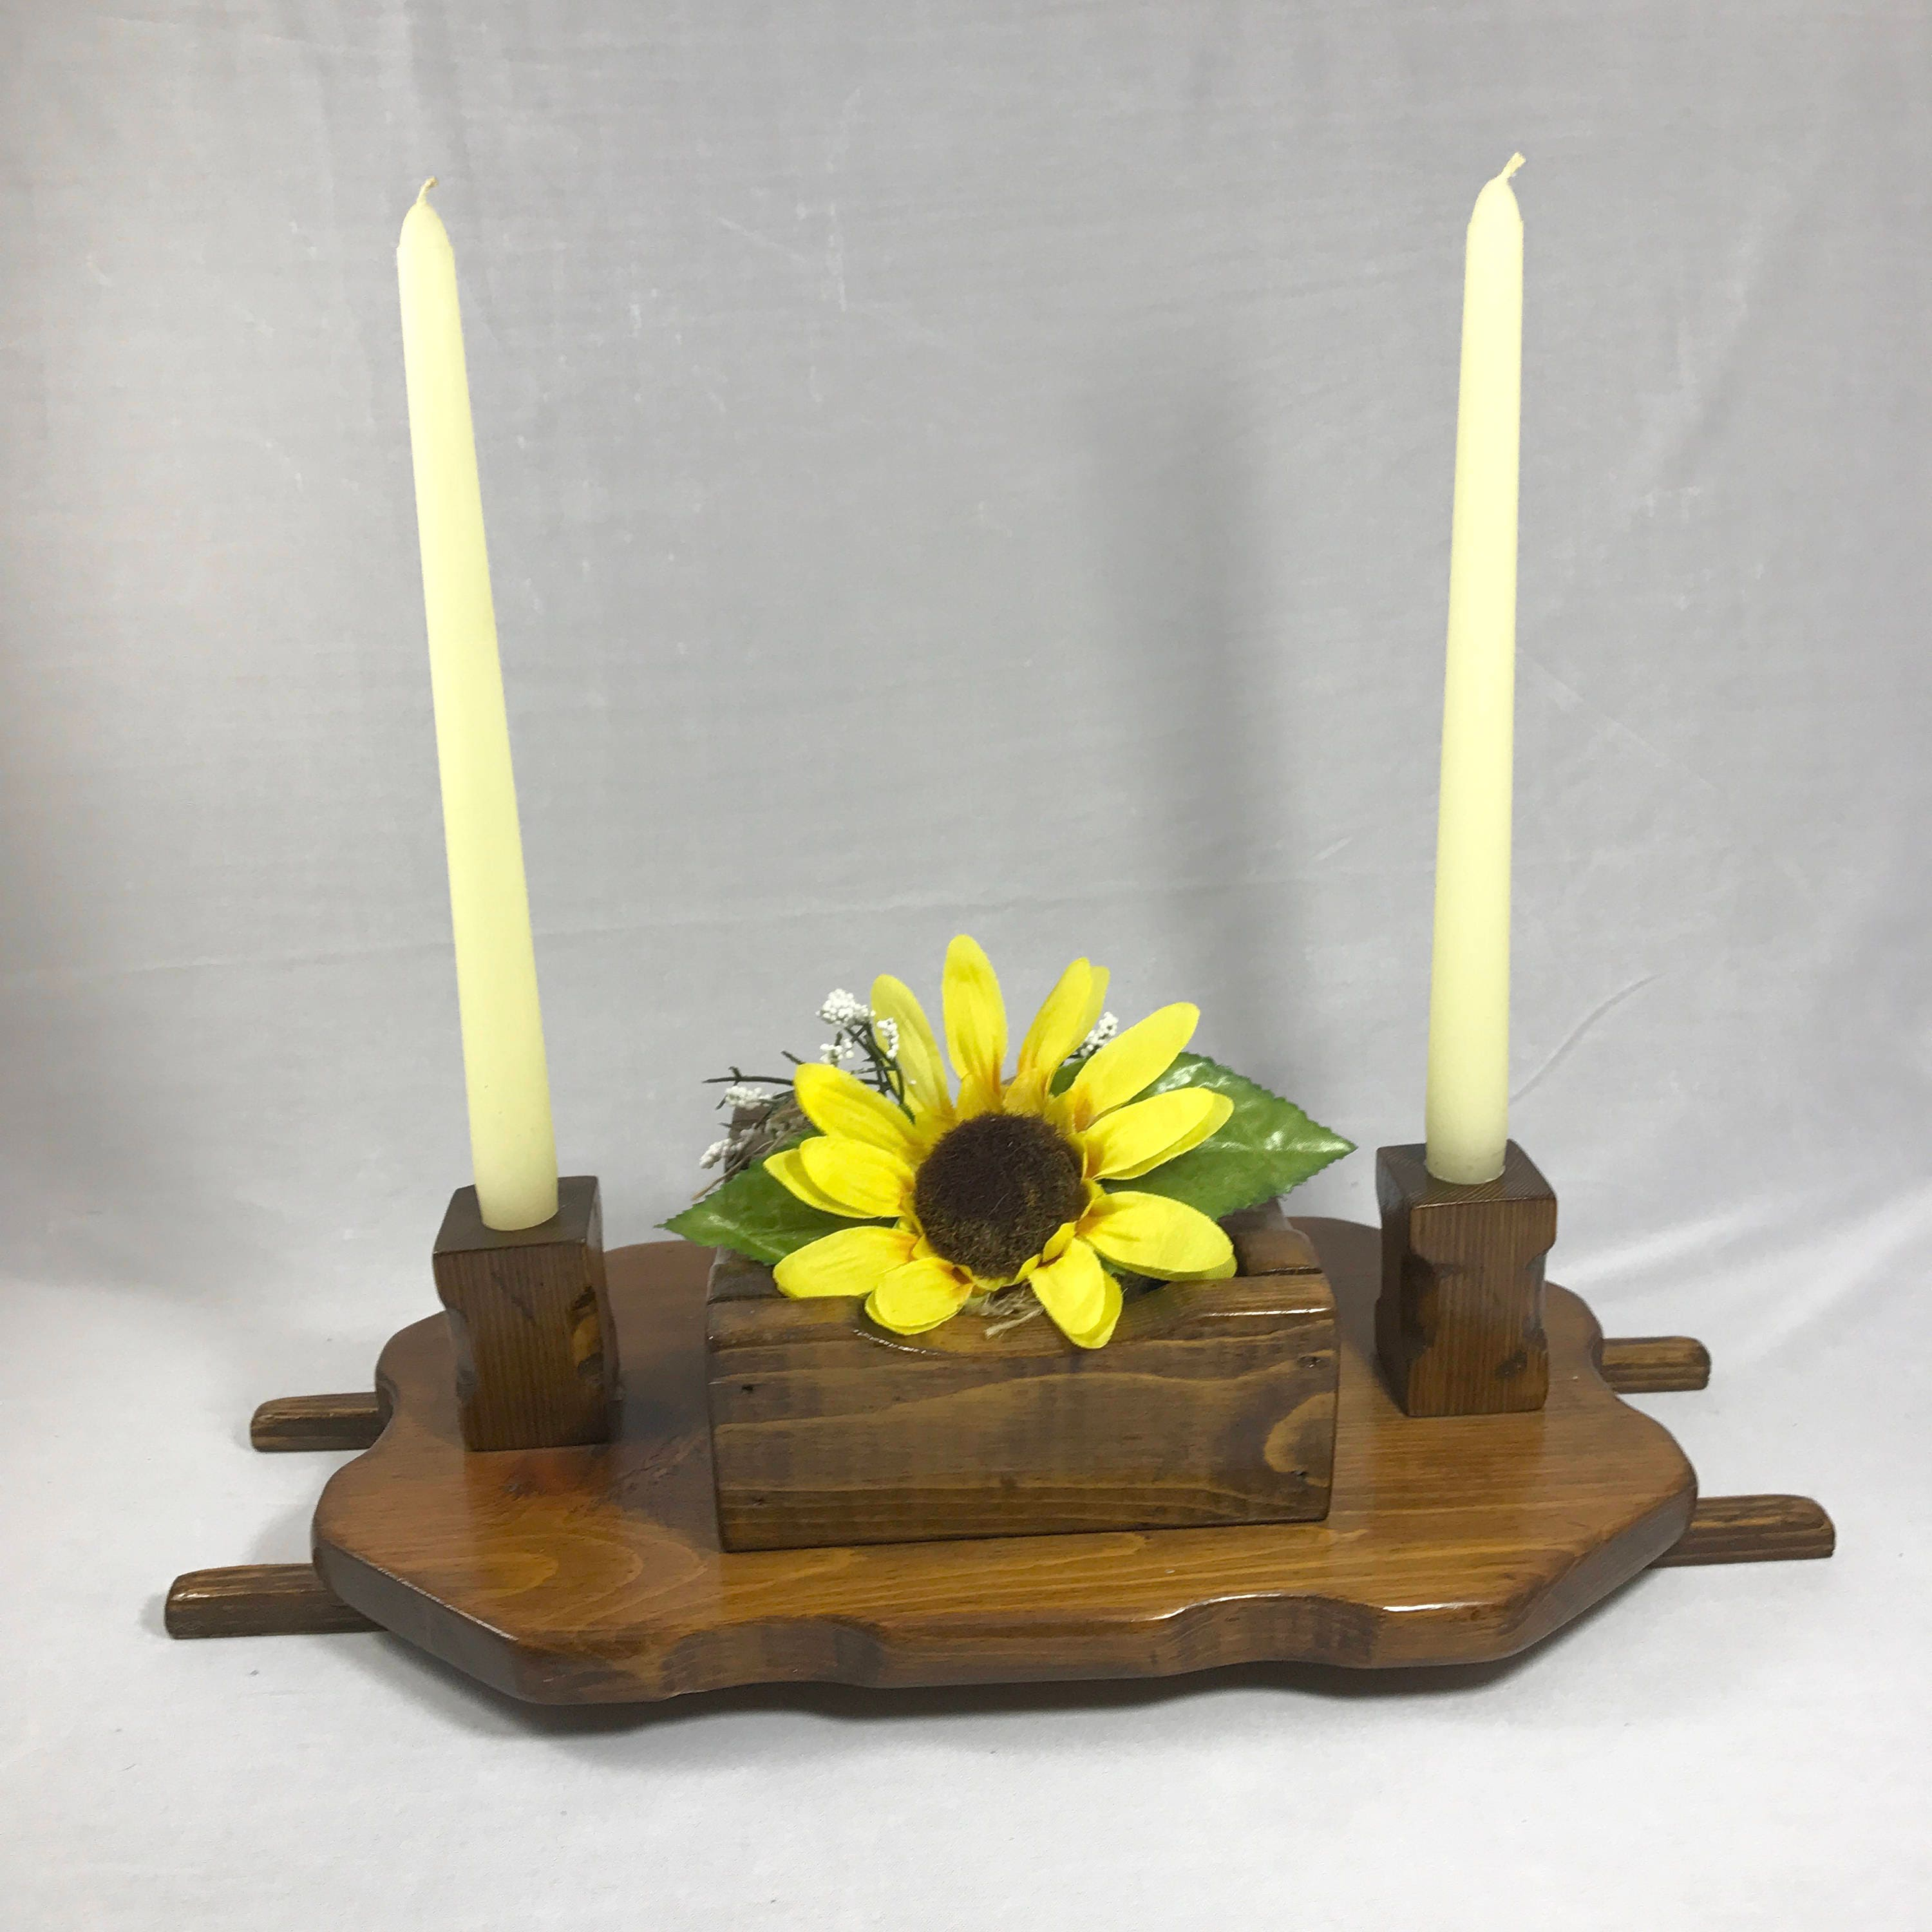 Wooden unity candle holder table centerpiece